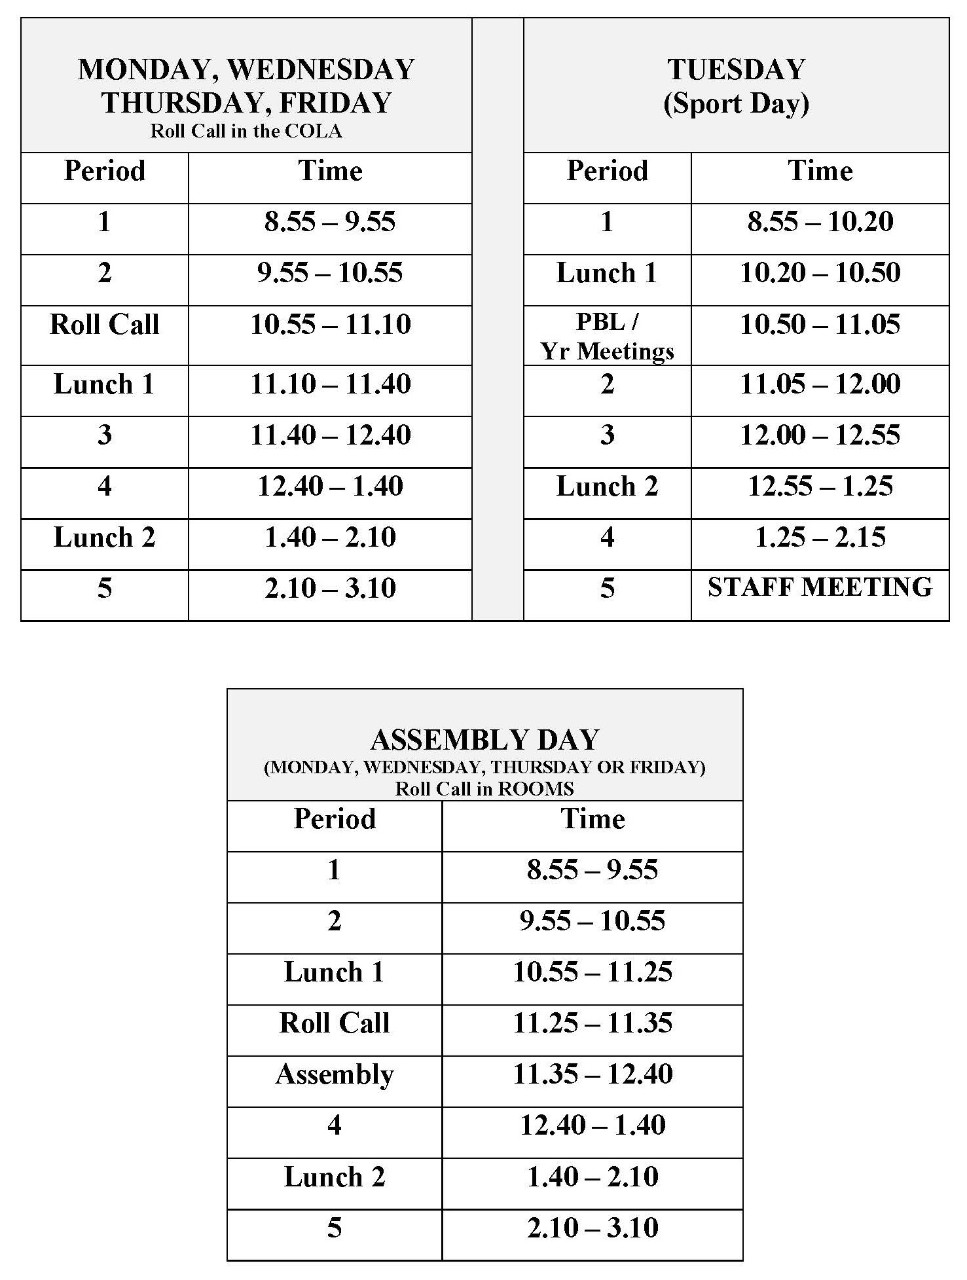 A table showing bell times for a normal school day, a sport day and an assembly day